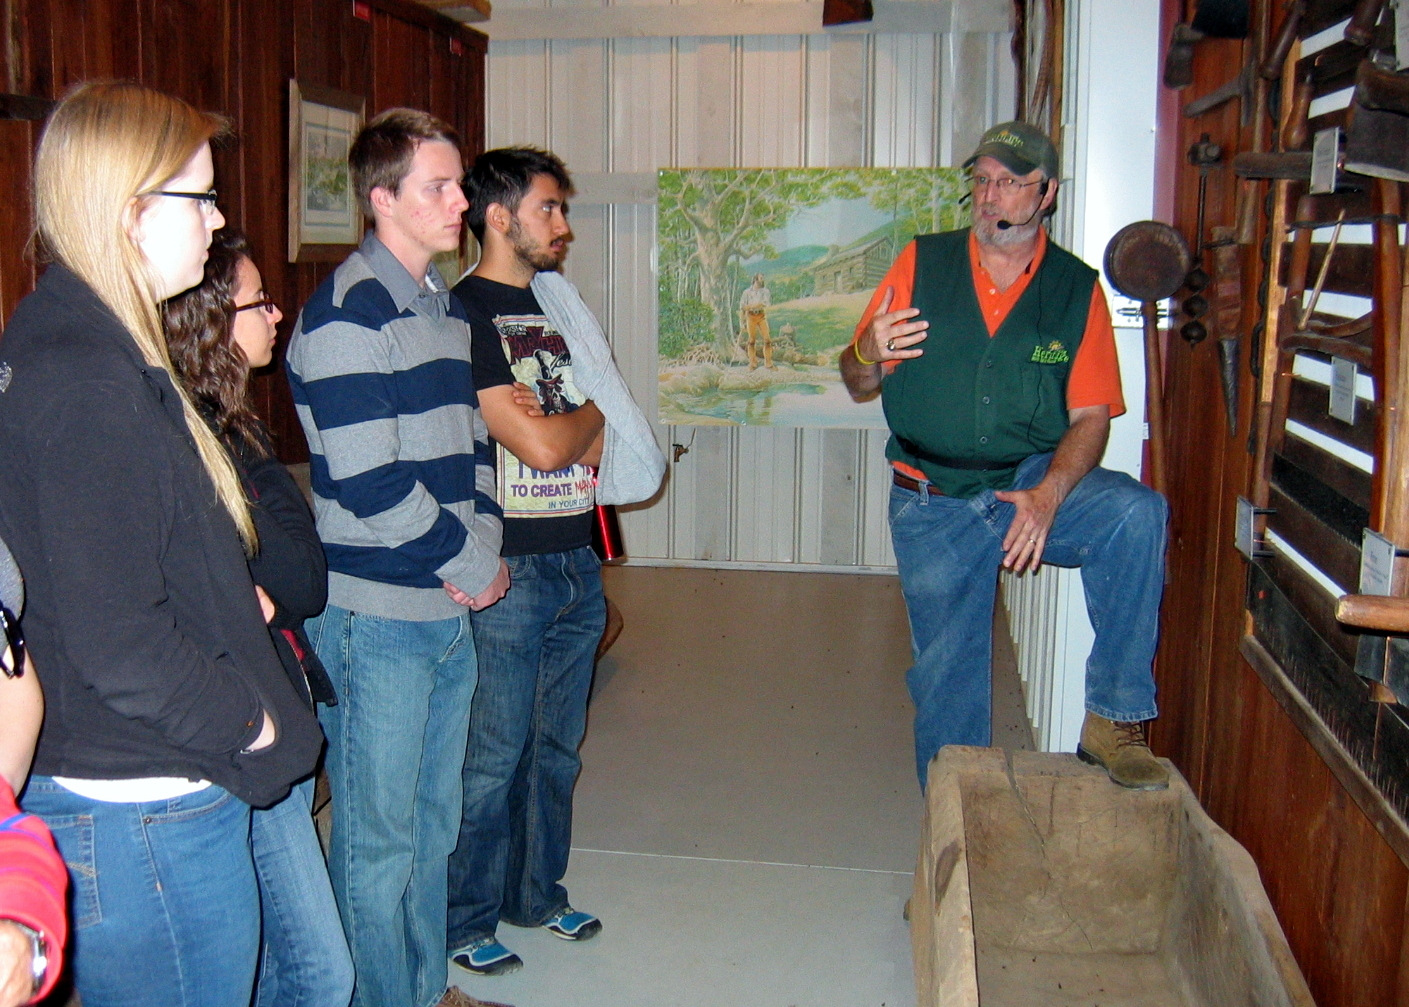 Members of the ANT Club (and guests) tour the Heritage Farm and Museum